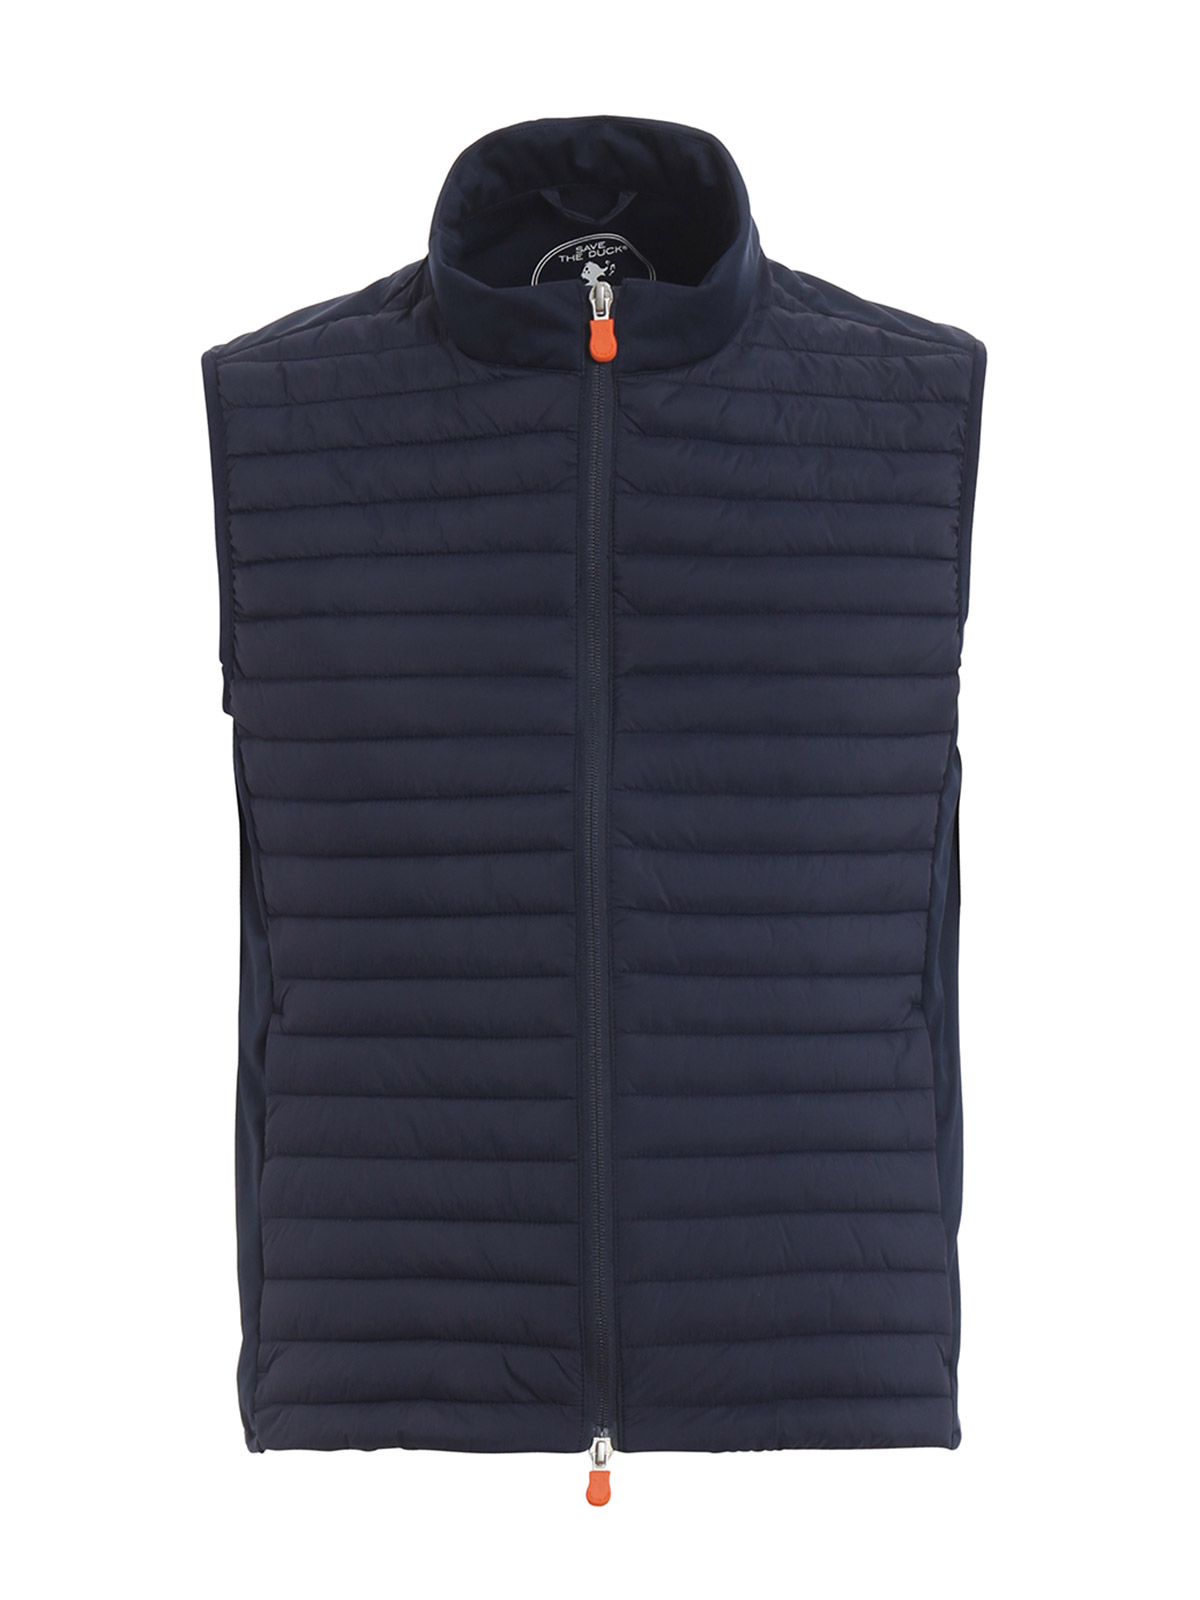 buy online 8f70d 4e869 SAVE THE DUCK Gilet Uomo Trapuntato D8587M